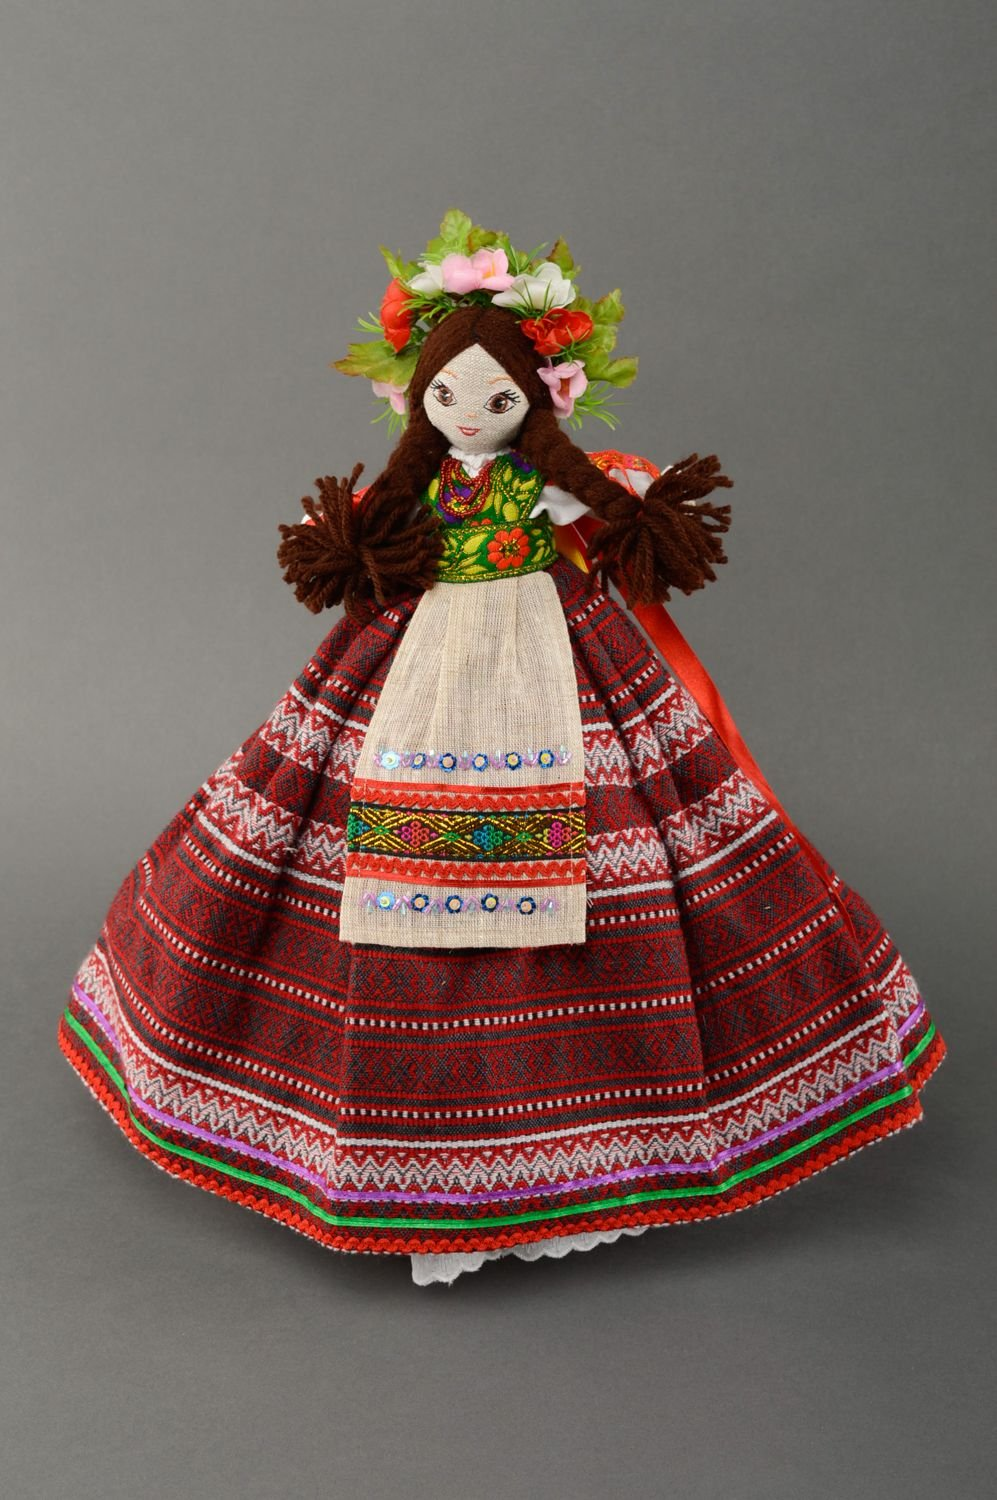 Teapot Cozy Interior Doll In Ukrainian Style